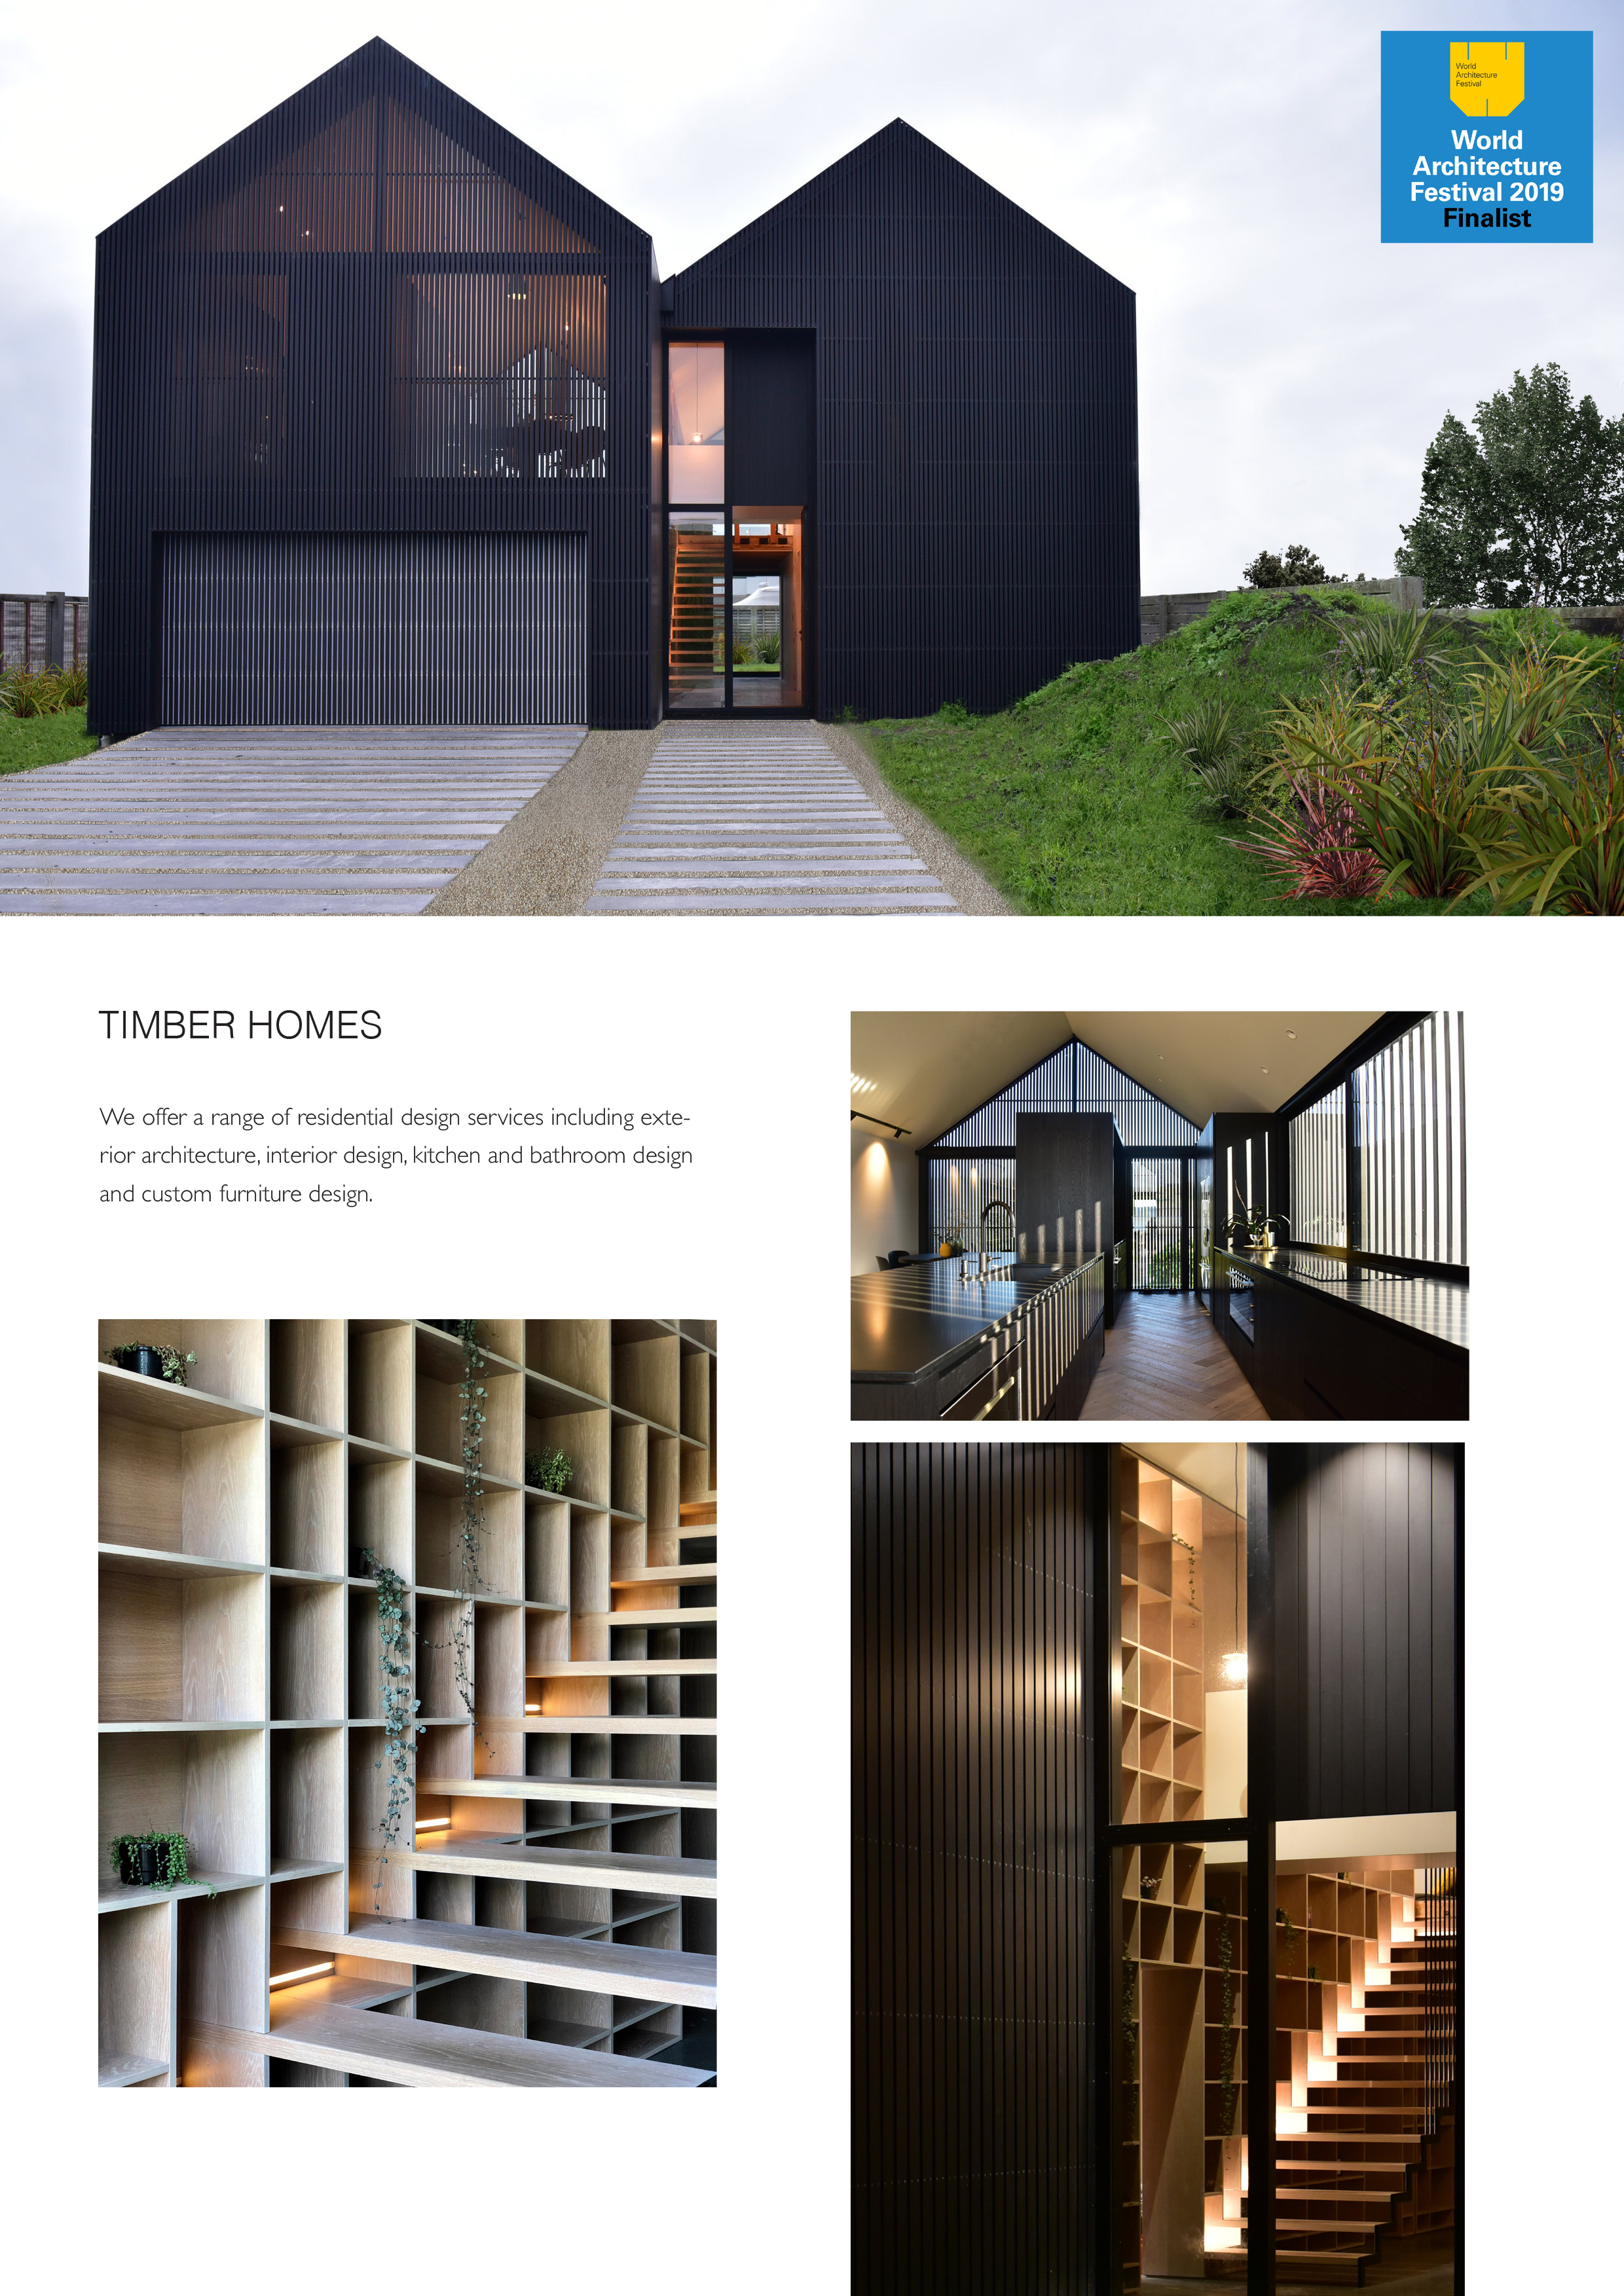 Atelier Aitken Home Design - Black wood house - The Elegant Boatshed pg 1.jpg